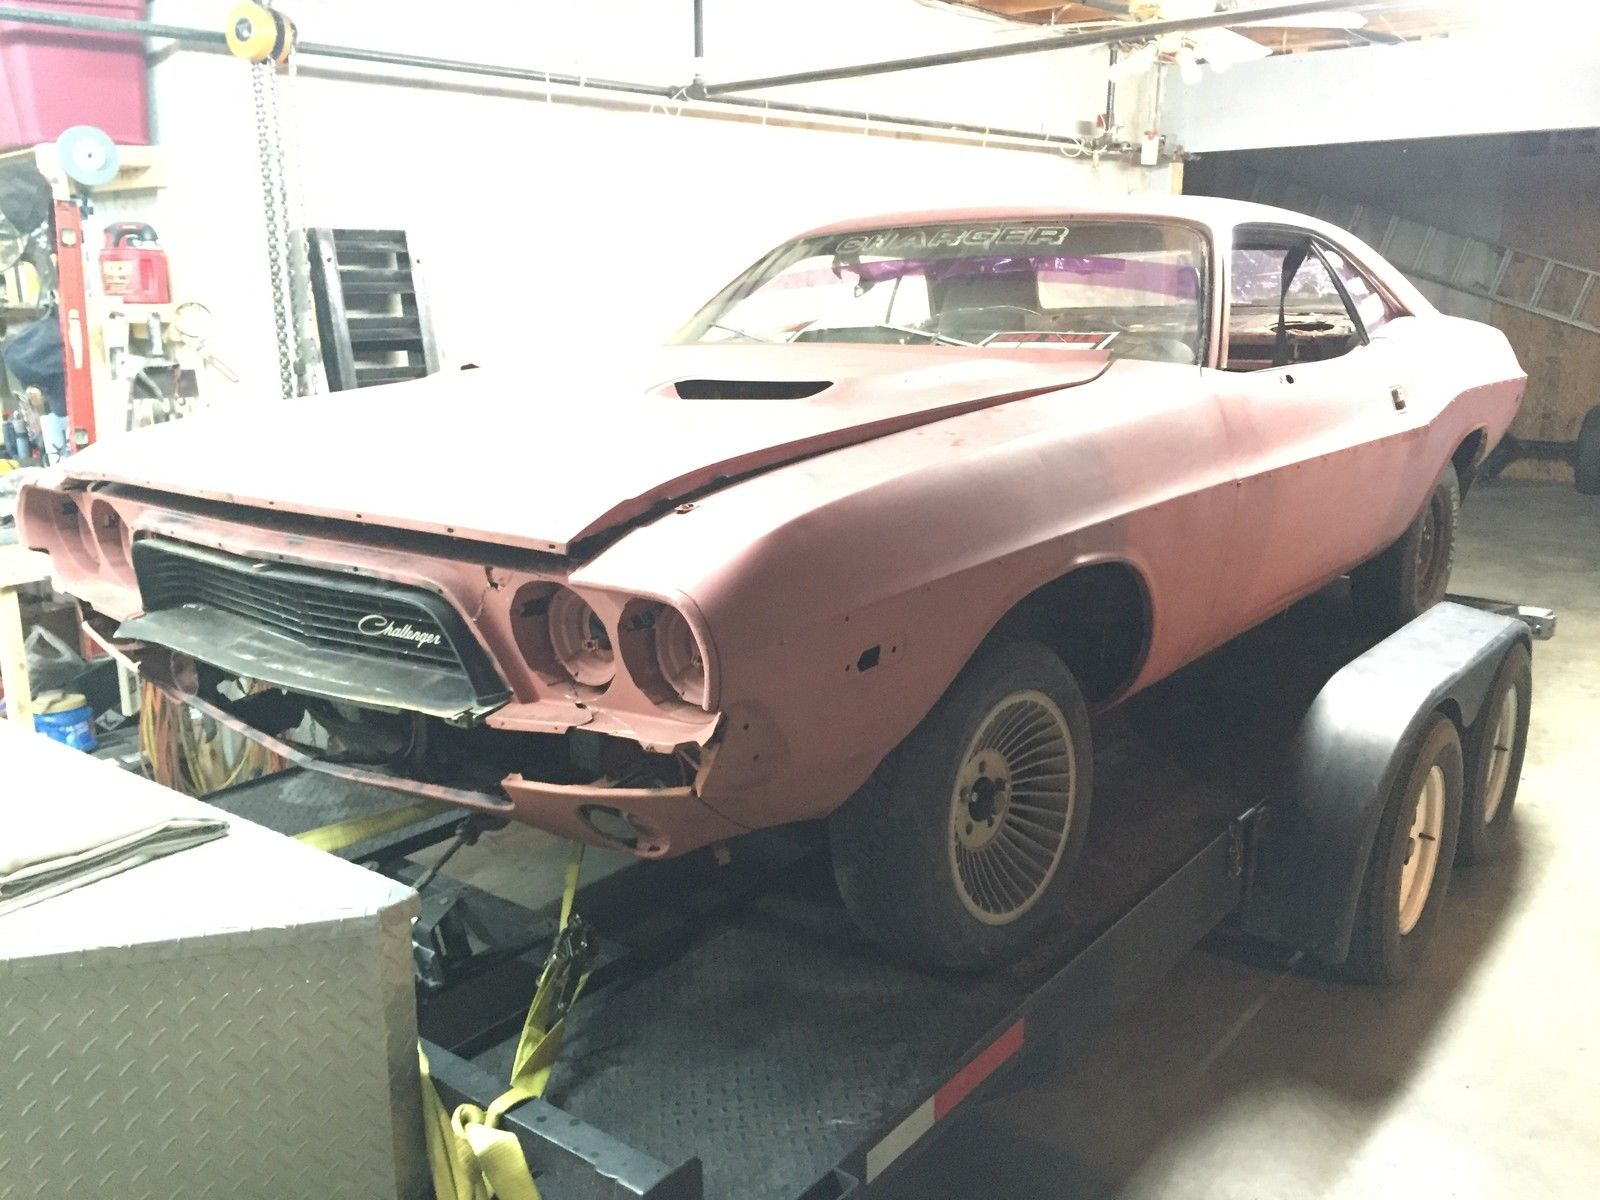 1973 Dodge Challenger Project Car No Motor Or Transmission